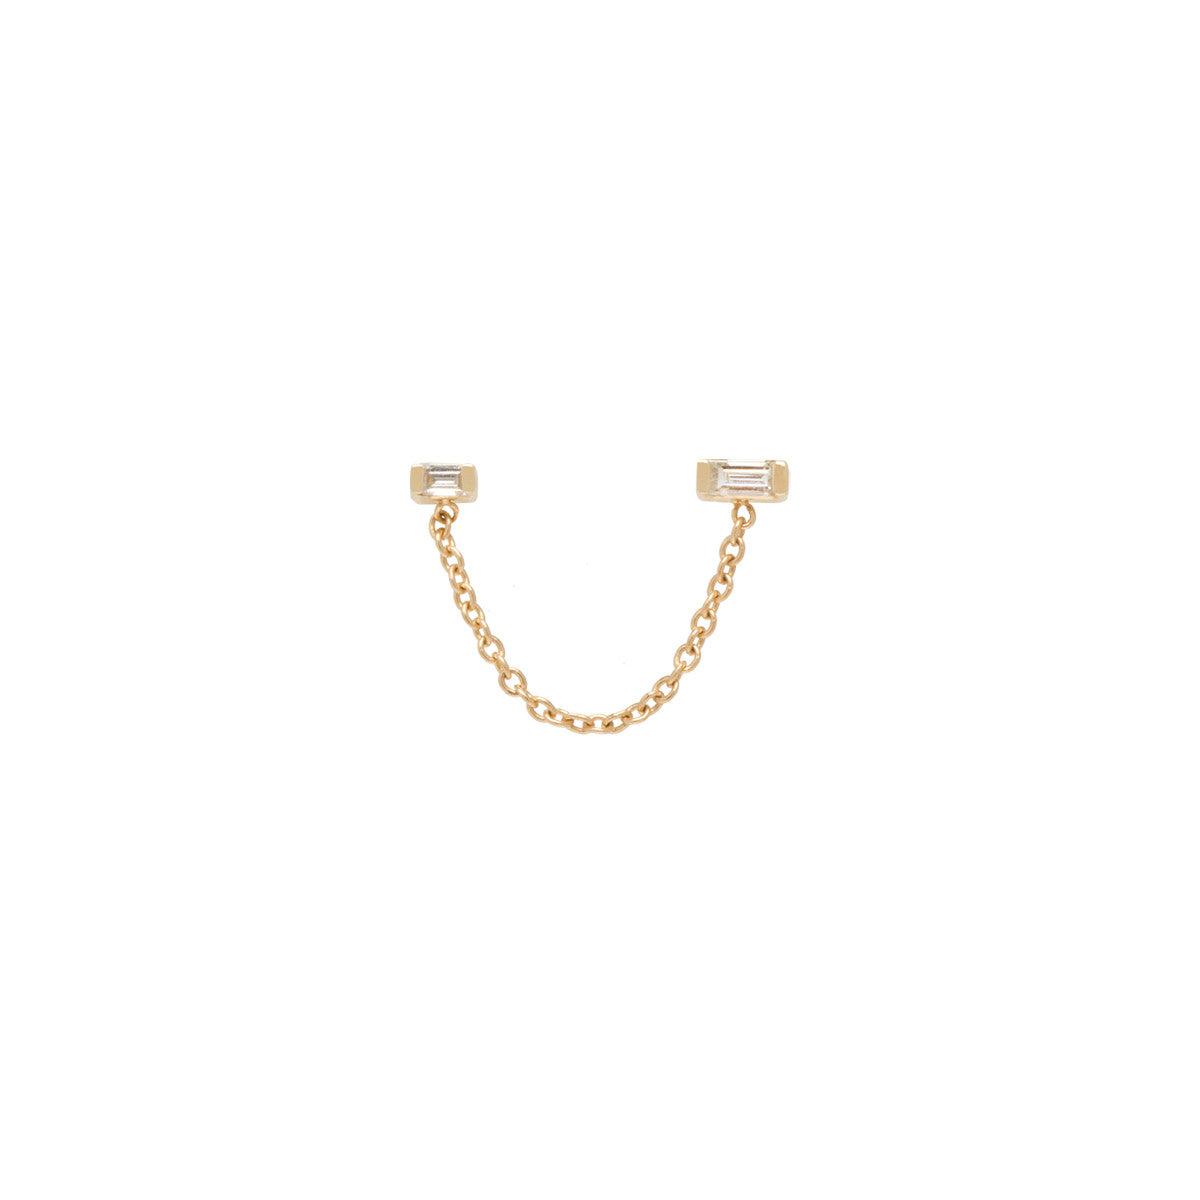 Zoë Chicco 14kt Yellow Gold Double Baguette Diamond Chain Stud Earring